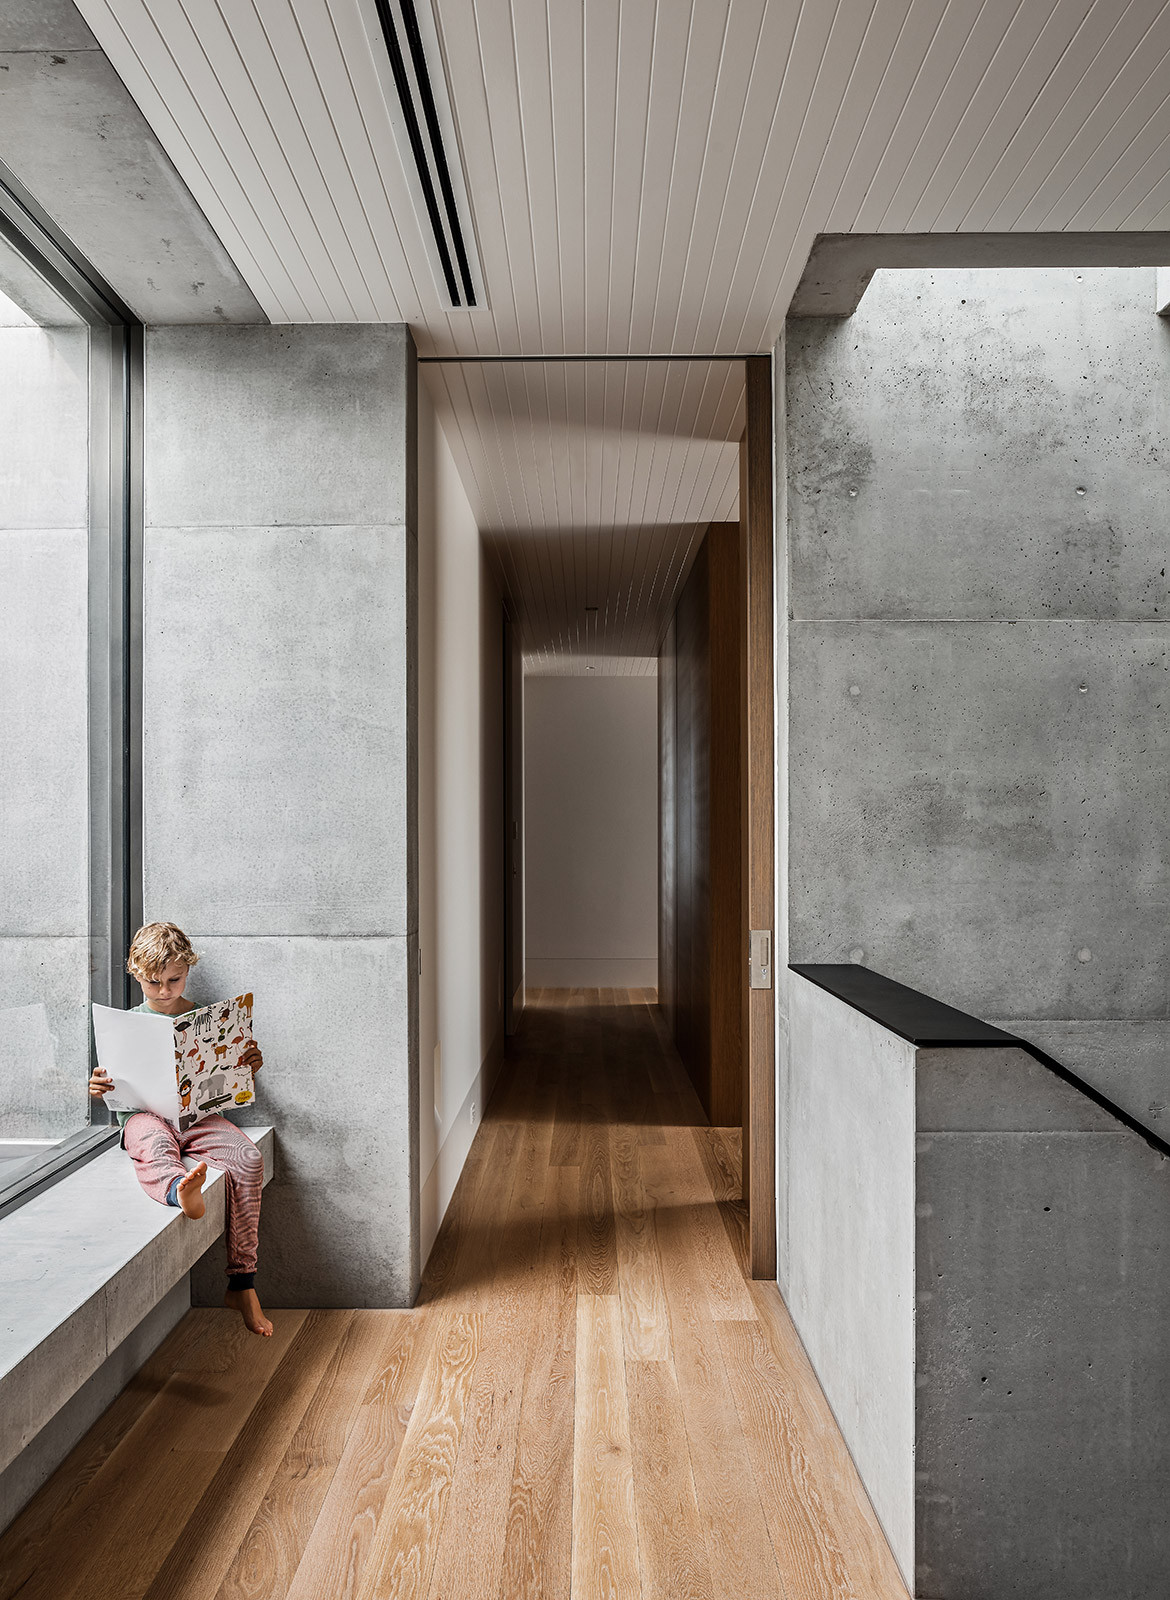 Mermaid Beach Residence B.E Architecture Queenslander Architecture CC Andy MacPherson hallway